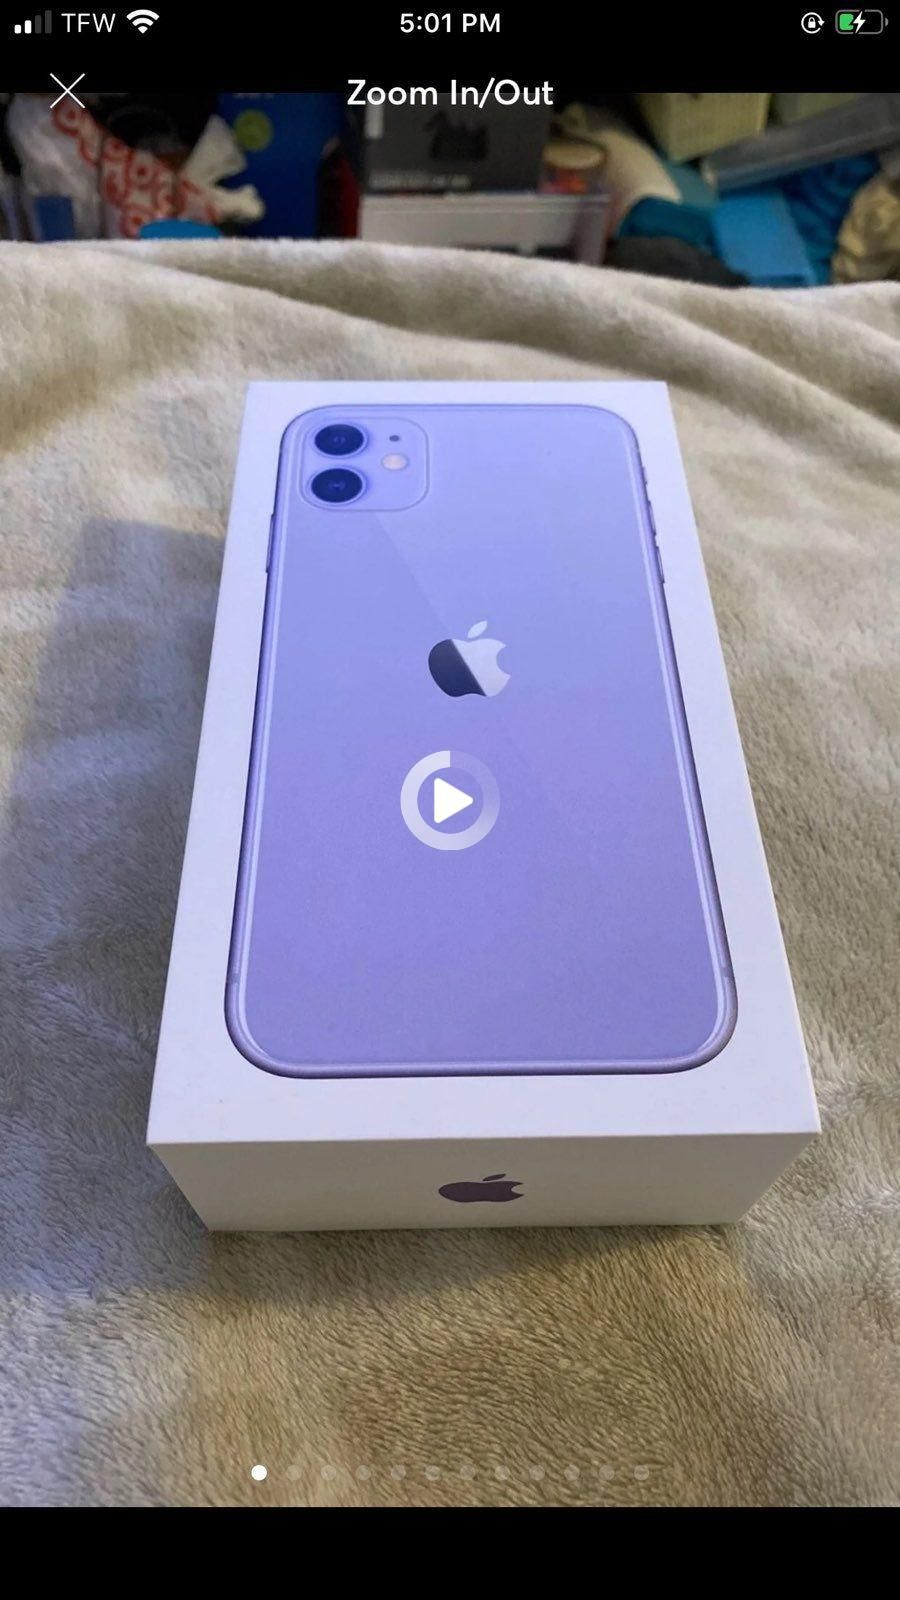 Goodliness Hair In 2021 Iphone Iphone 11 Apple Products